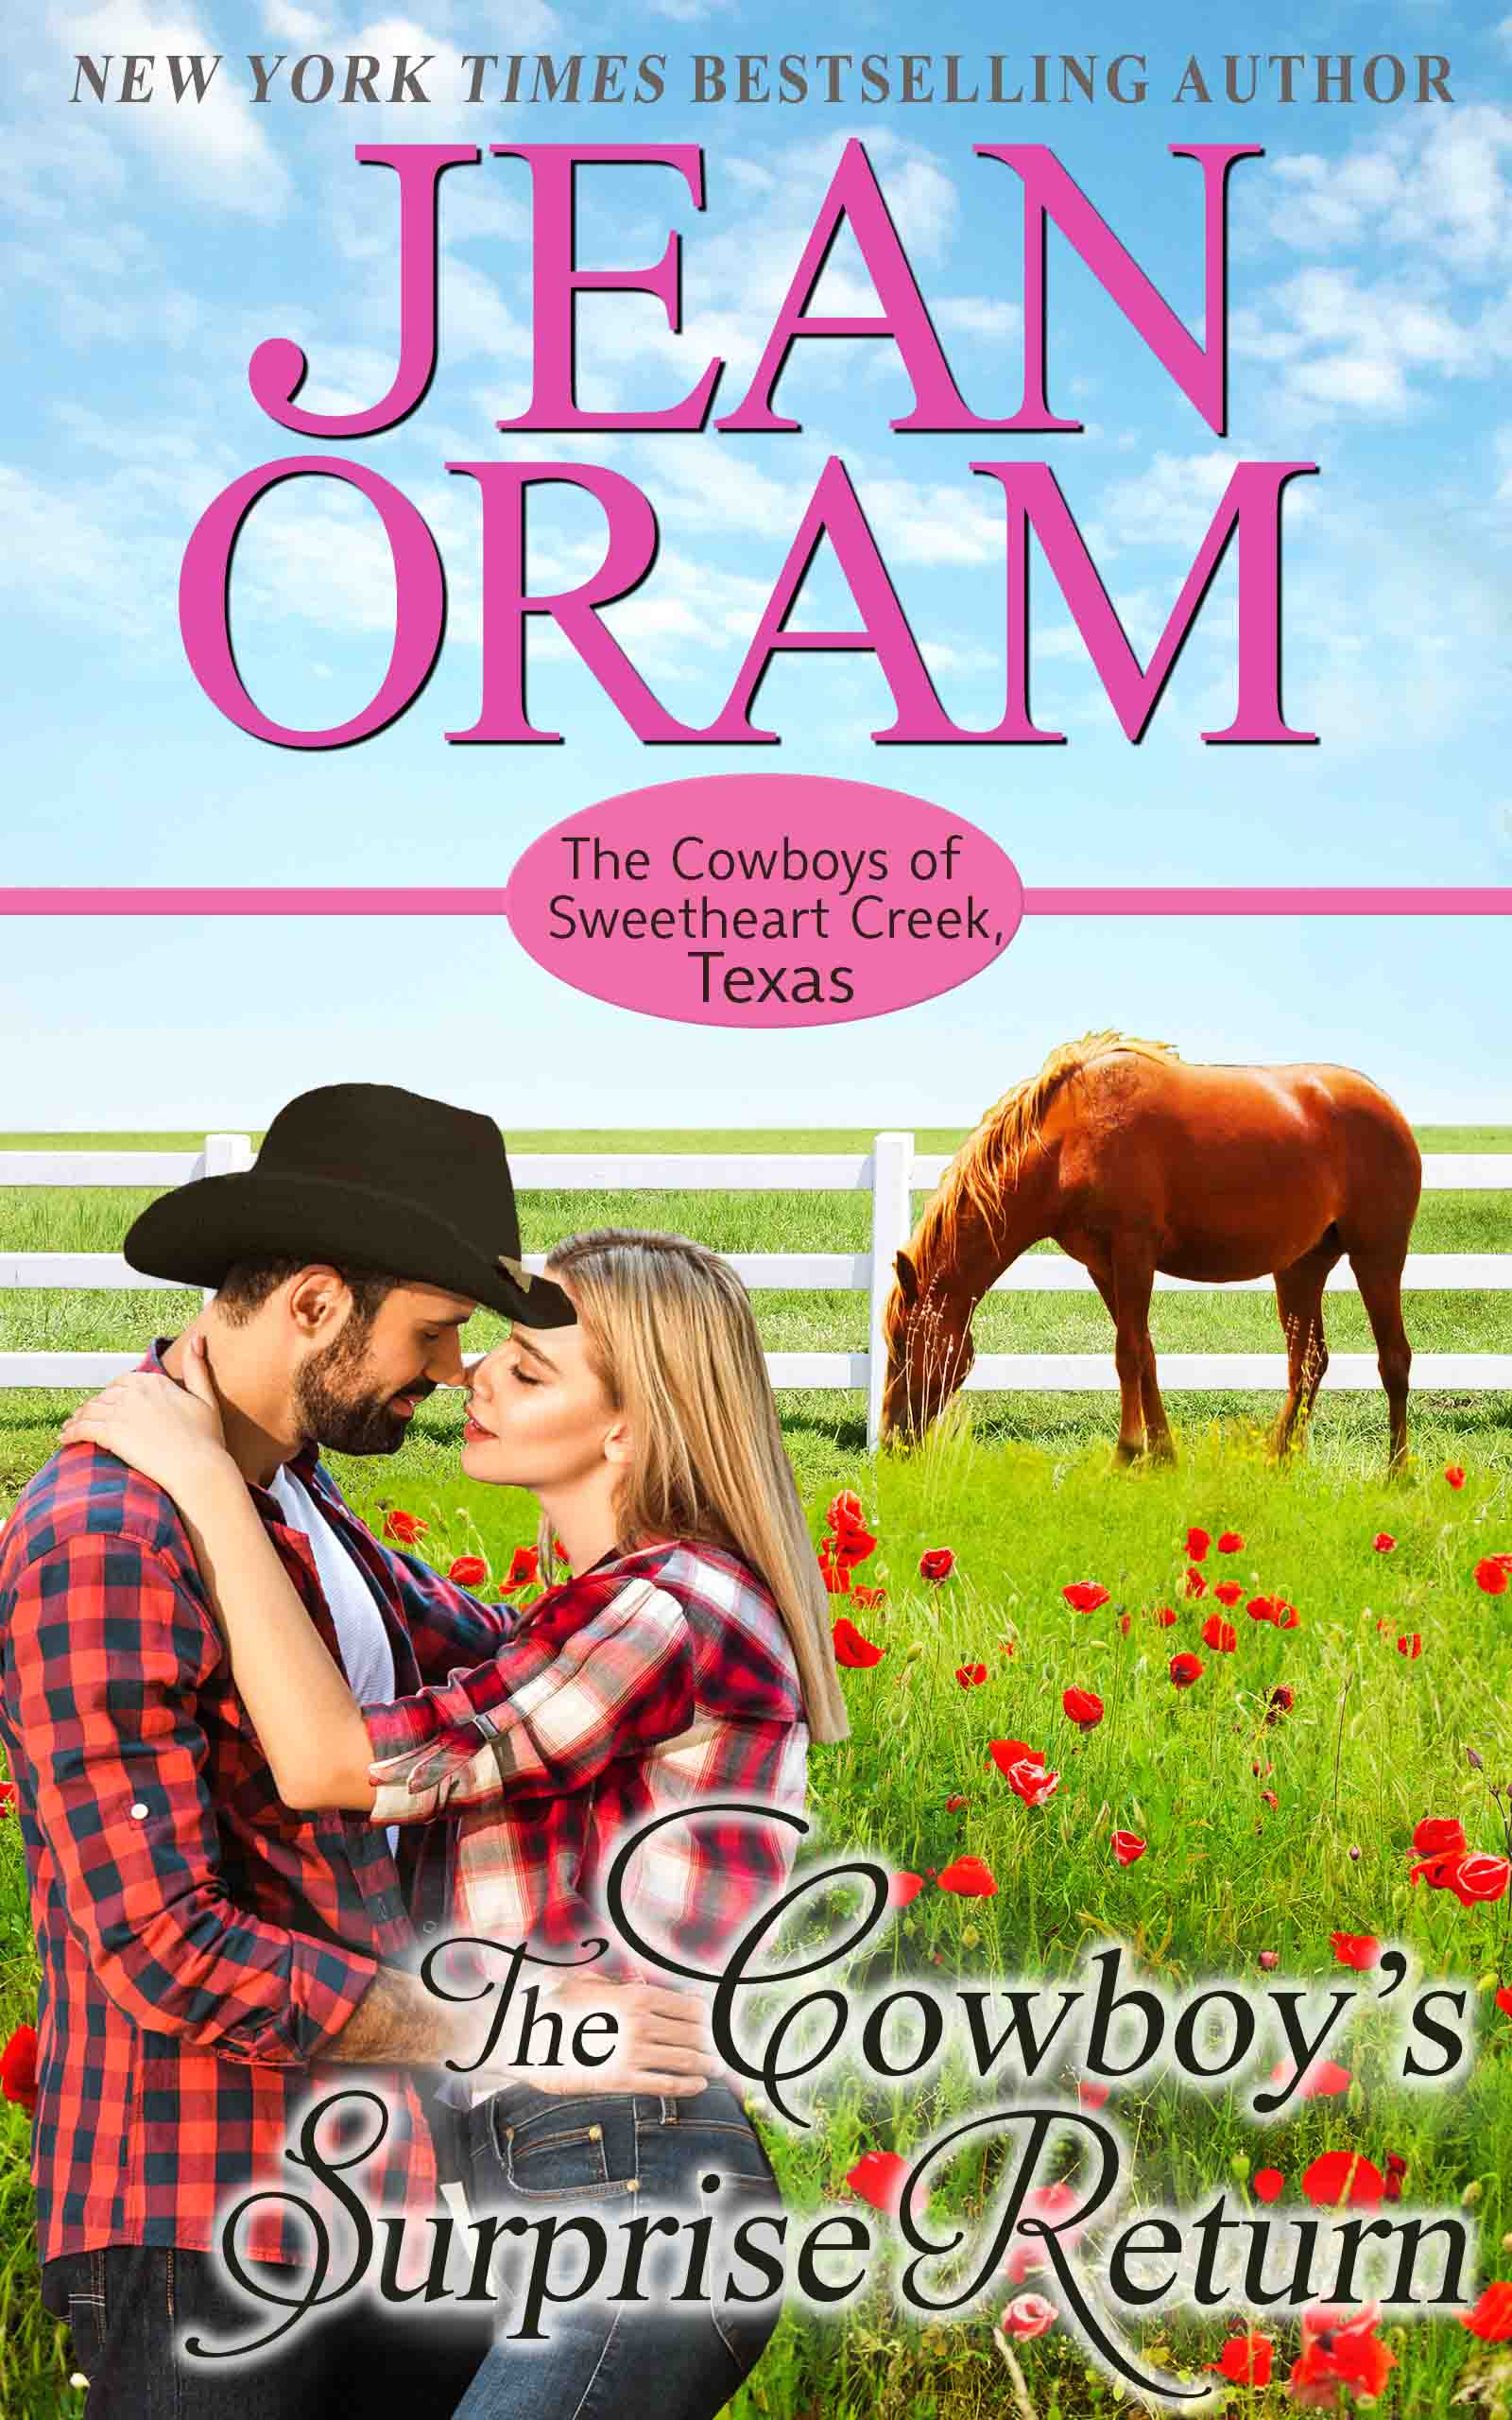 The Cowboy's Surprise Return, book 5, Jean Oram's The Cowboys of Sweetheart Creek, Texas series. Jackie Moorhouse and Cole Wylder find true love in this fake relationship cowboy romance.